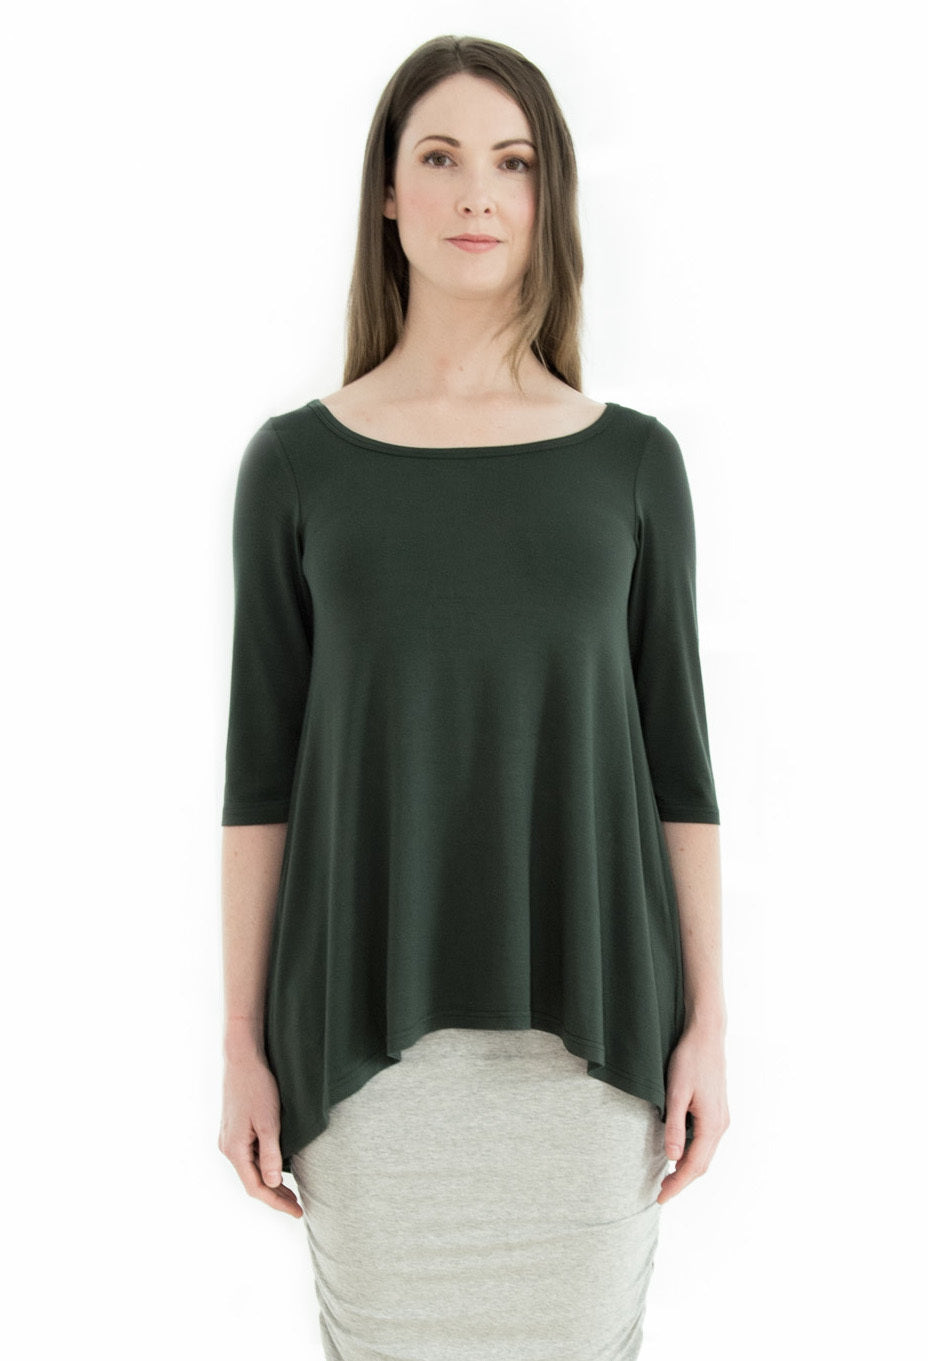 Bamboo High Low Hem Top - Forest Green